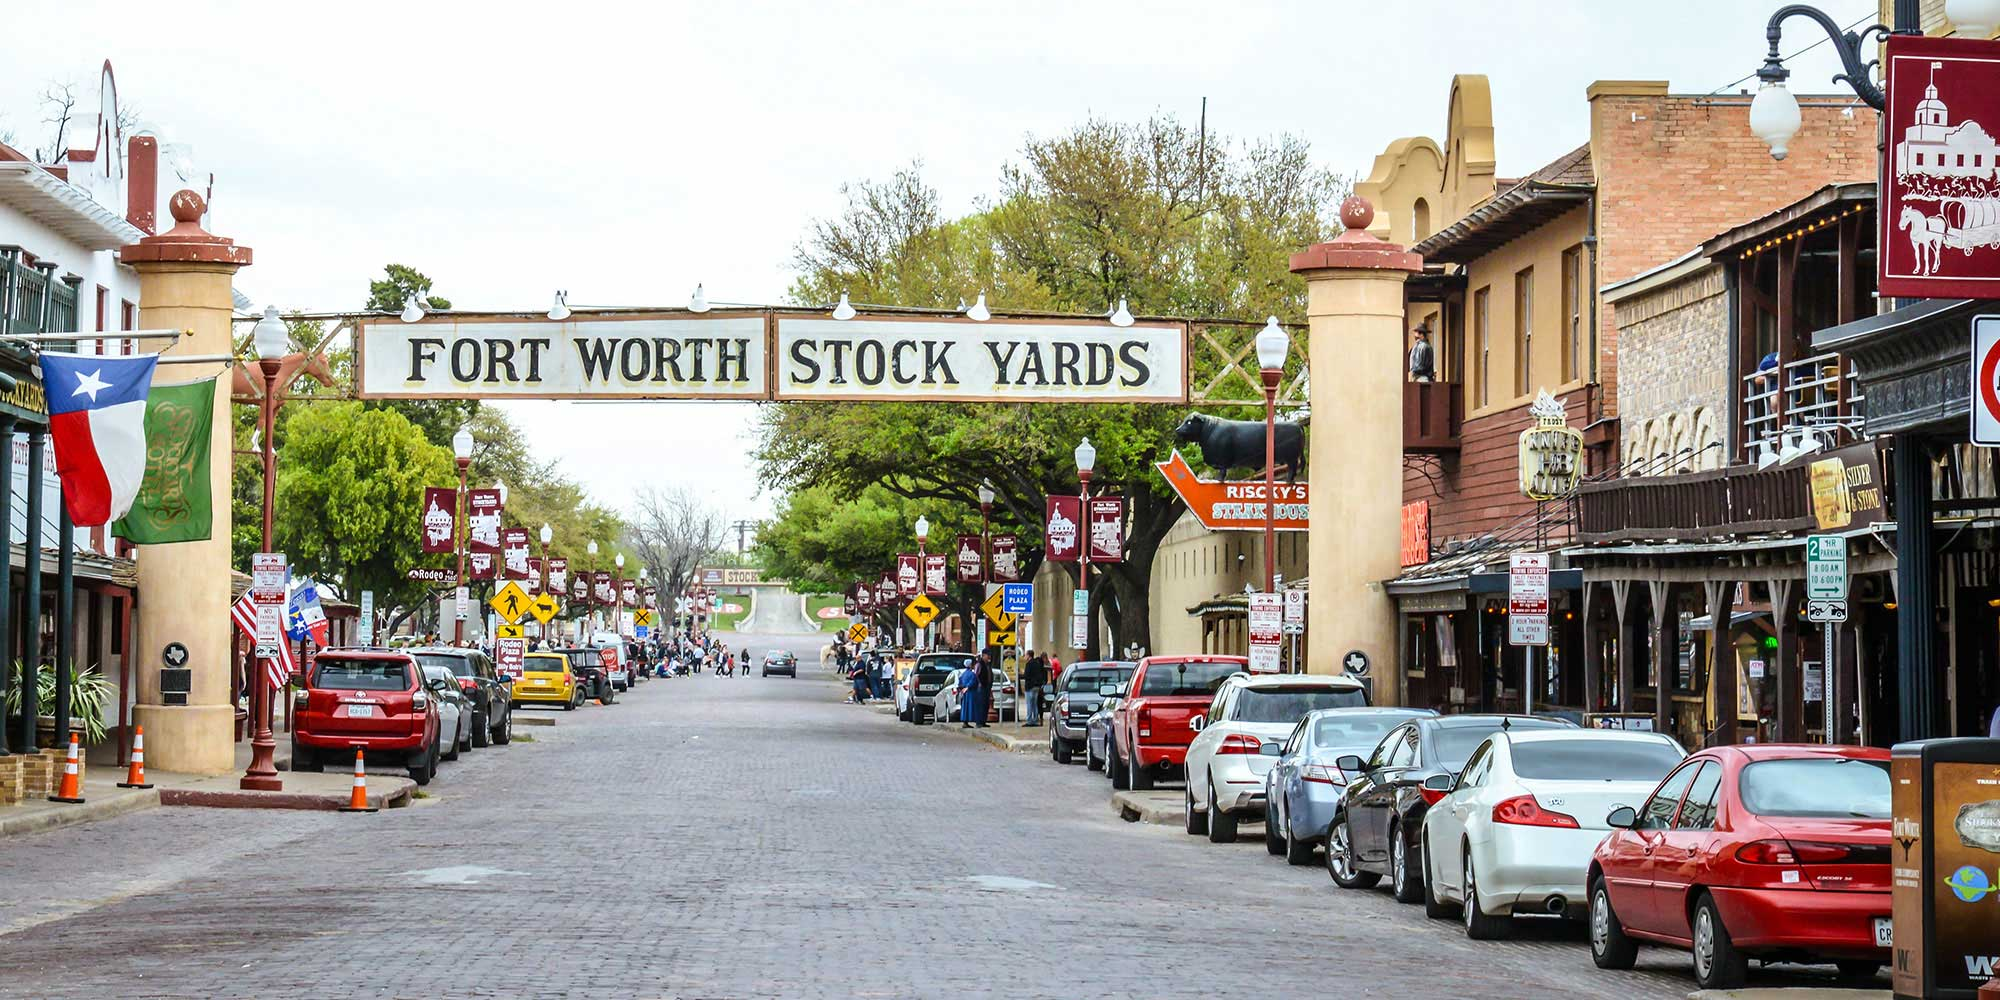 Stockyards - Photographing clients in the historic Northside of Fort Worth is tons of fun. From the iconic brick road down the center to the wooden pens in the back, there are so many great photo spots in the Stockyards, it's near impossible to hit them all.